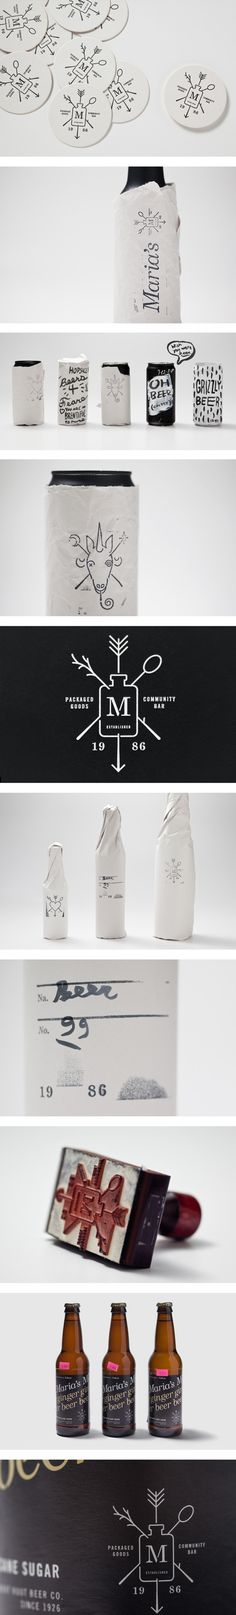 Maria's by Michael Freimuth #branding #packaging PD